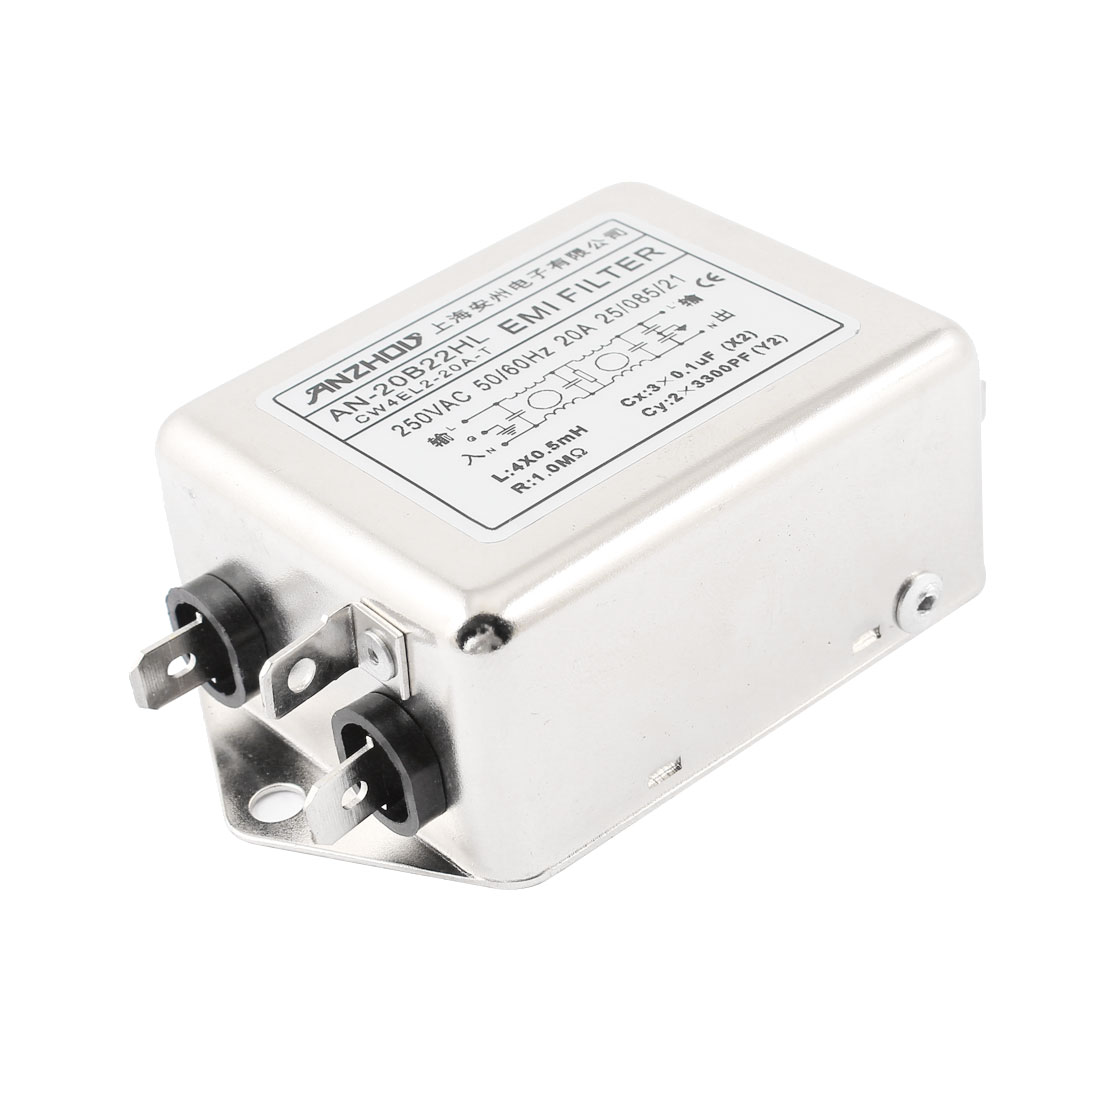 AN-20B22HL AC 250V 20A Single Phase Noise Suppressor Power Line EMI Filter